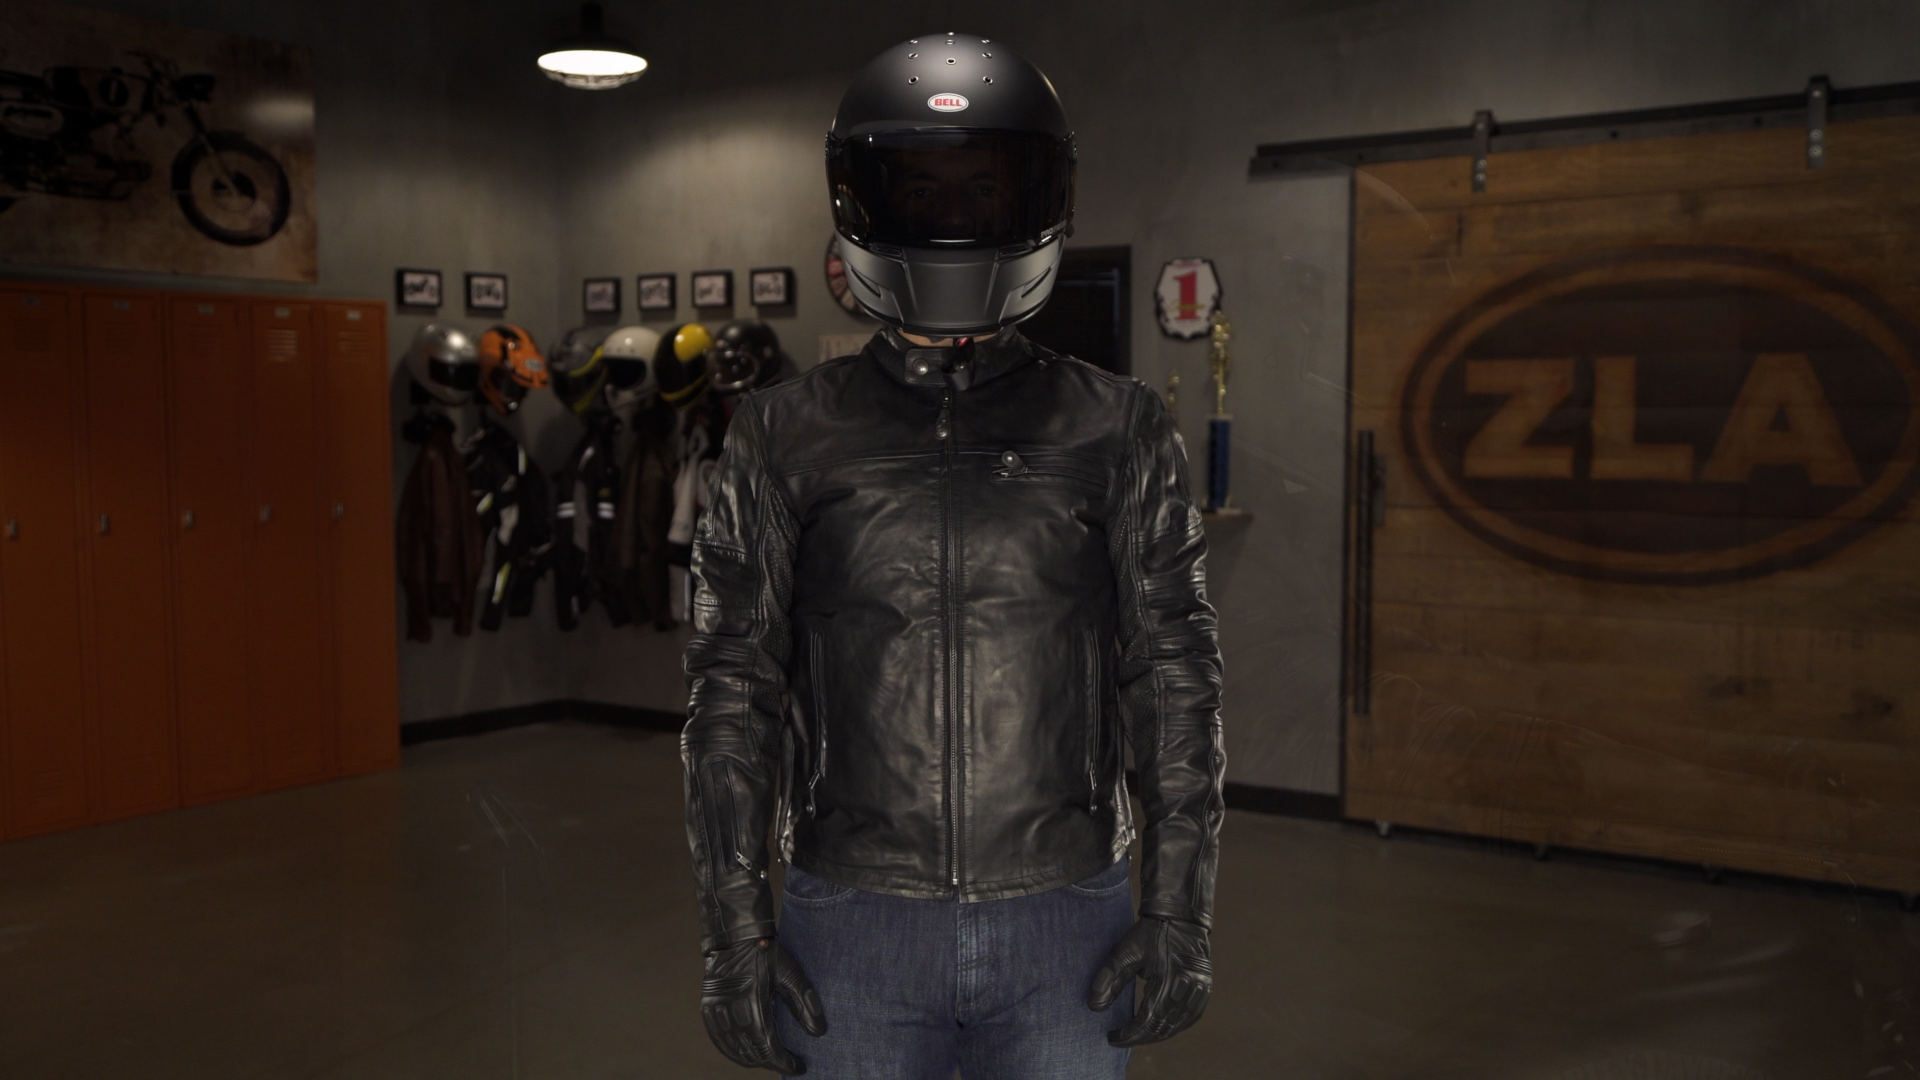 b61f4b76d How to size and buy a motorcycle jacket - RevZilla